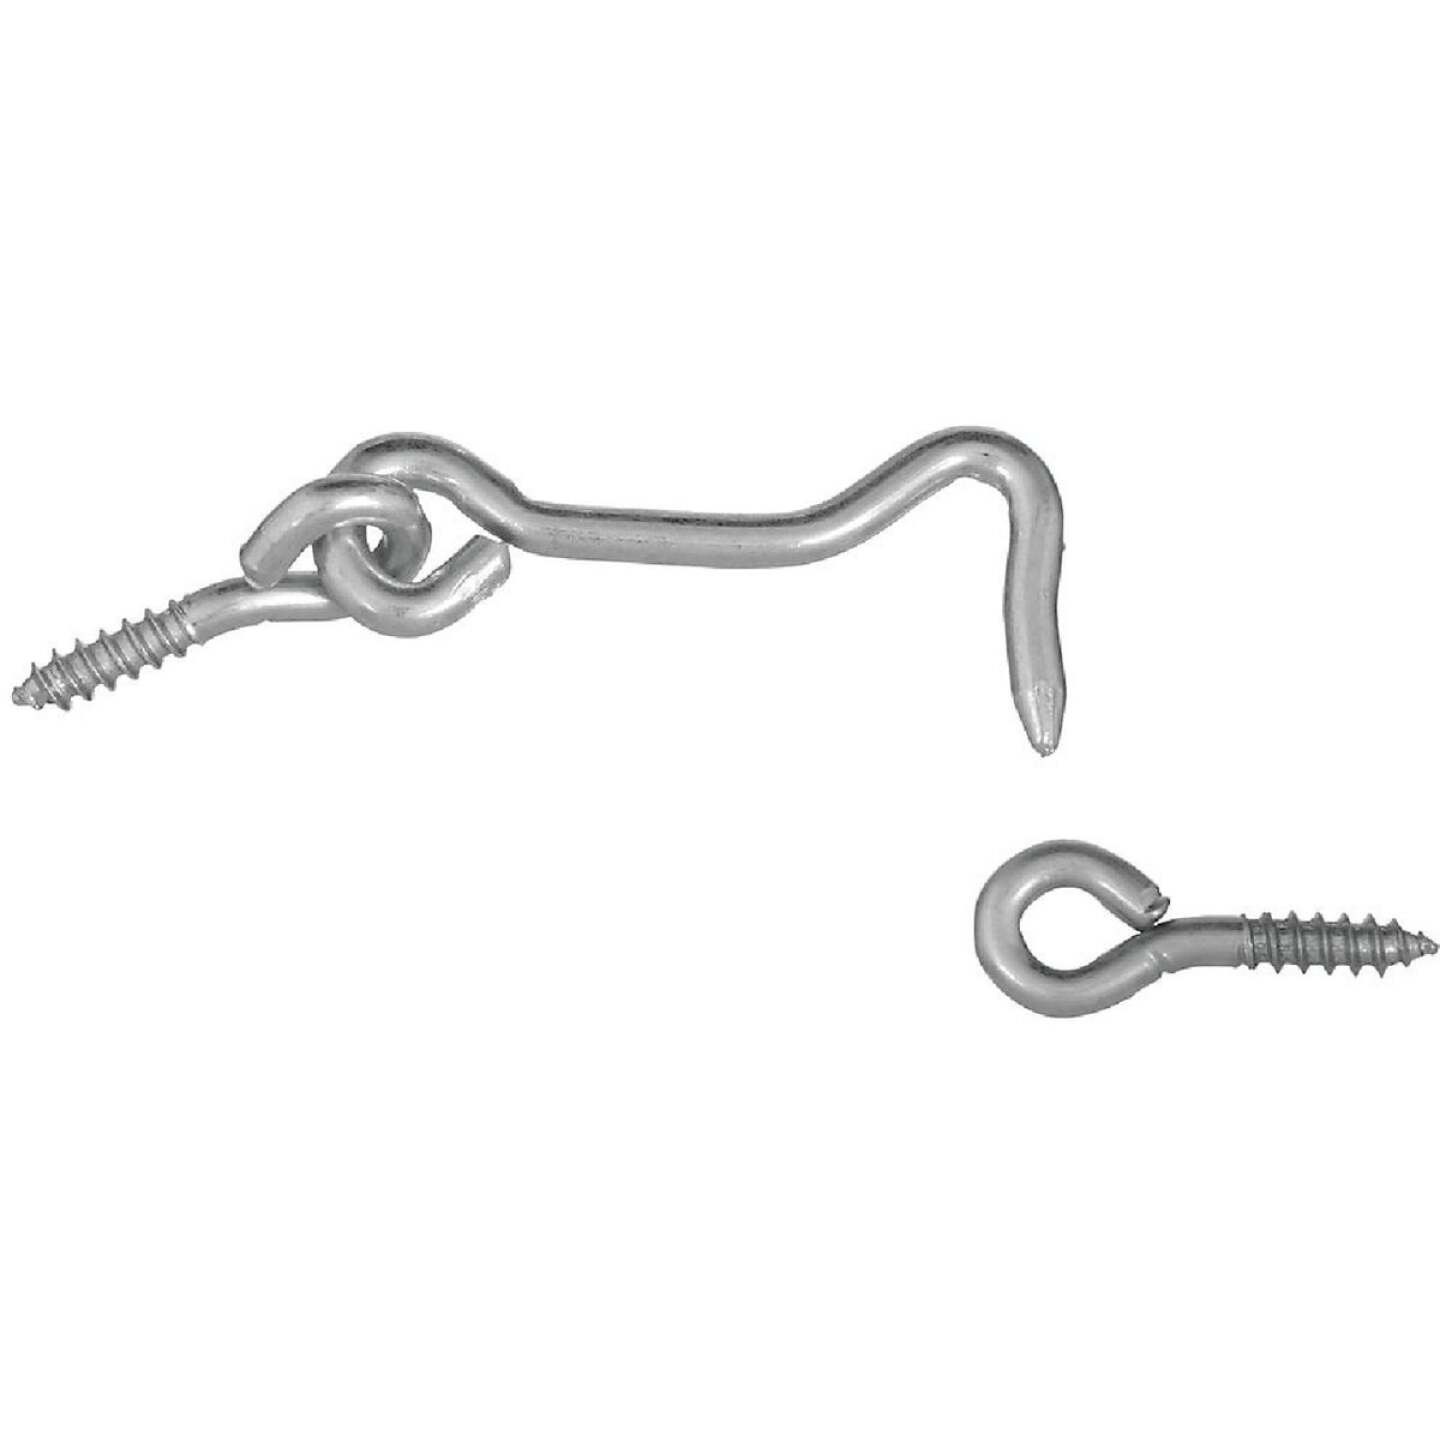 National 2 In. Steel Hook & Eye Bolt Image 1